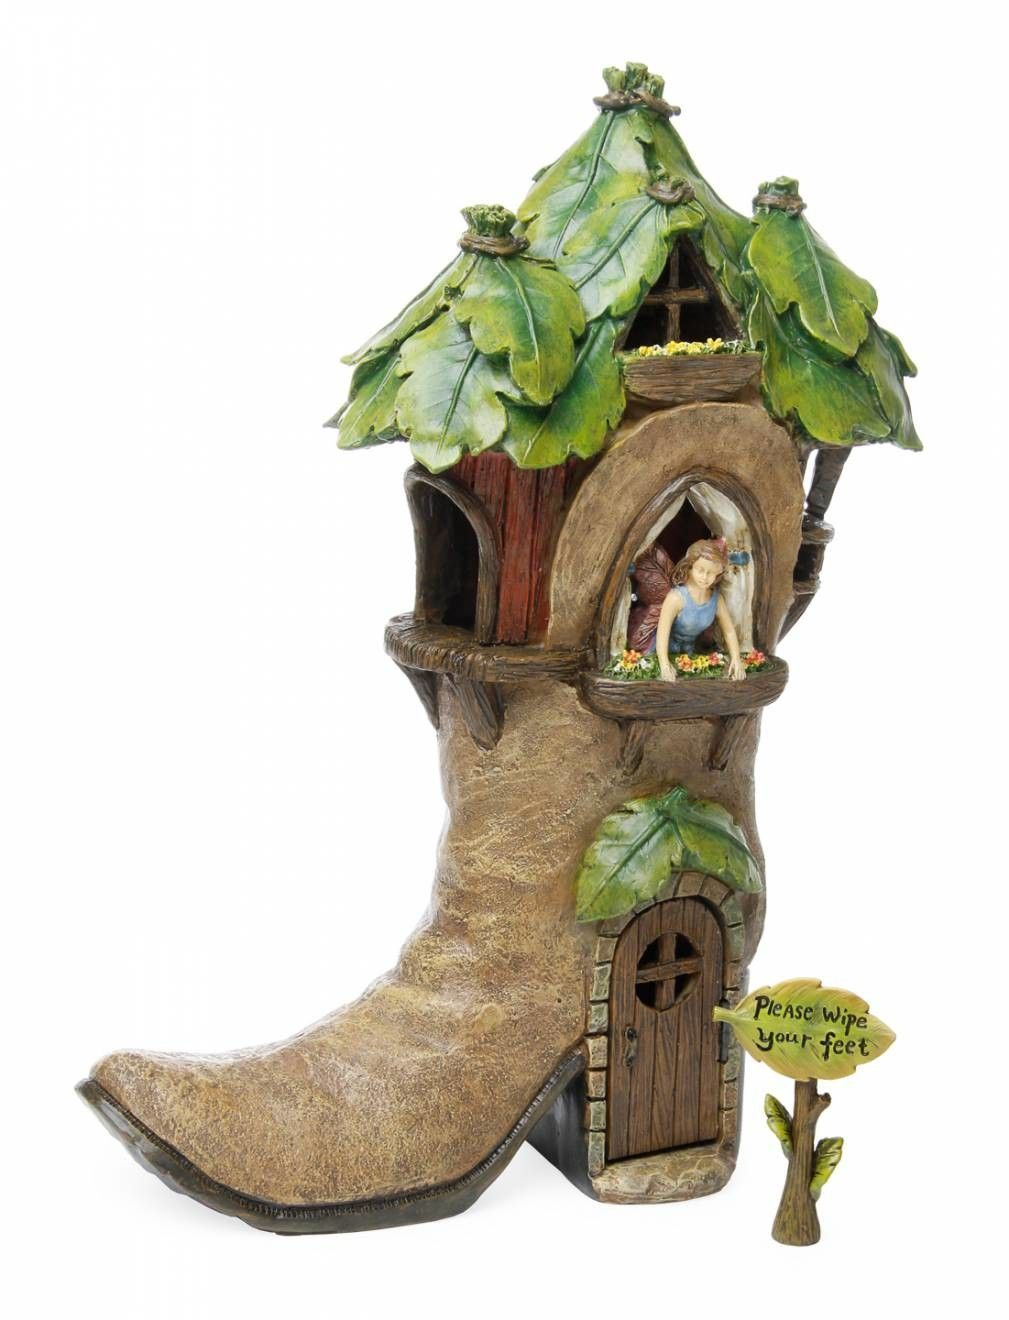 Enchanted fairy tree house here is a little faerie tree house linda - Find This Pin And More On Fairy Houses